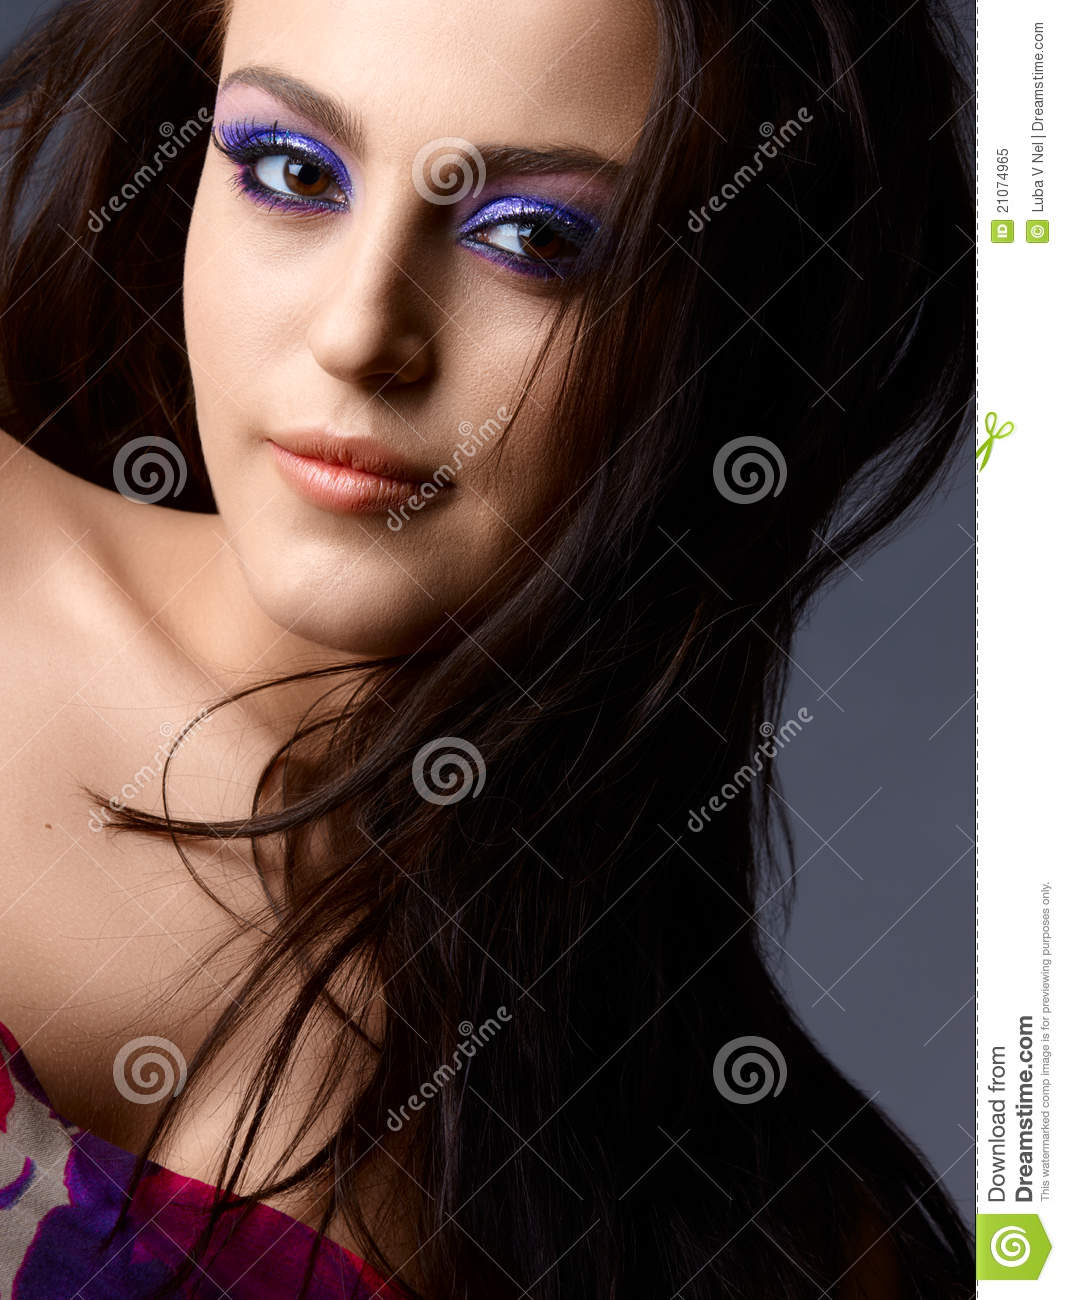 Beautiful Italian Woman With A Smile Royalty Free Stock Photo - Image 21074965-4947